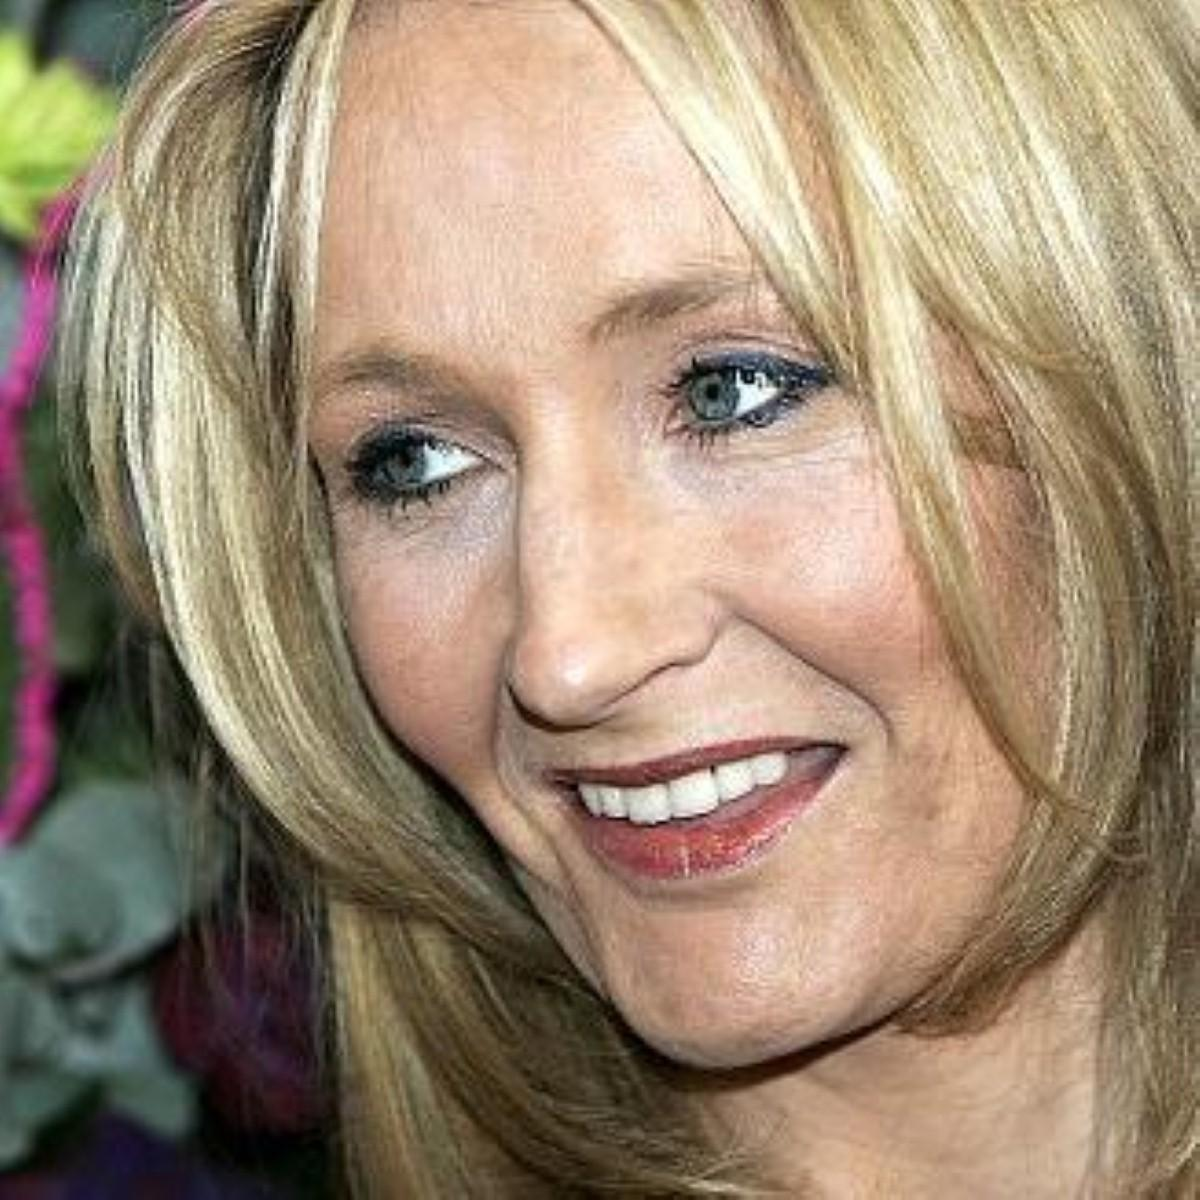 JK Rowling makes £10m multiple sclerosis donation